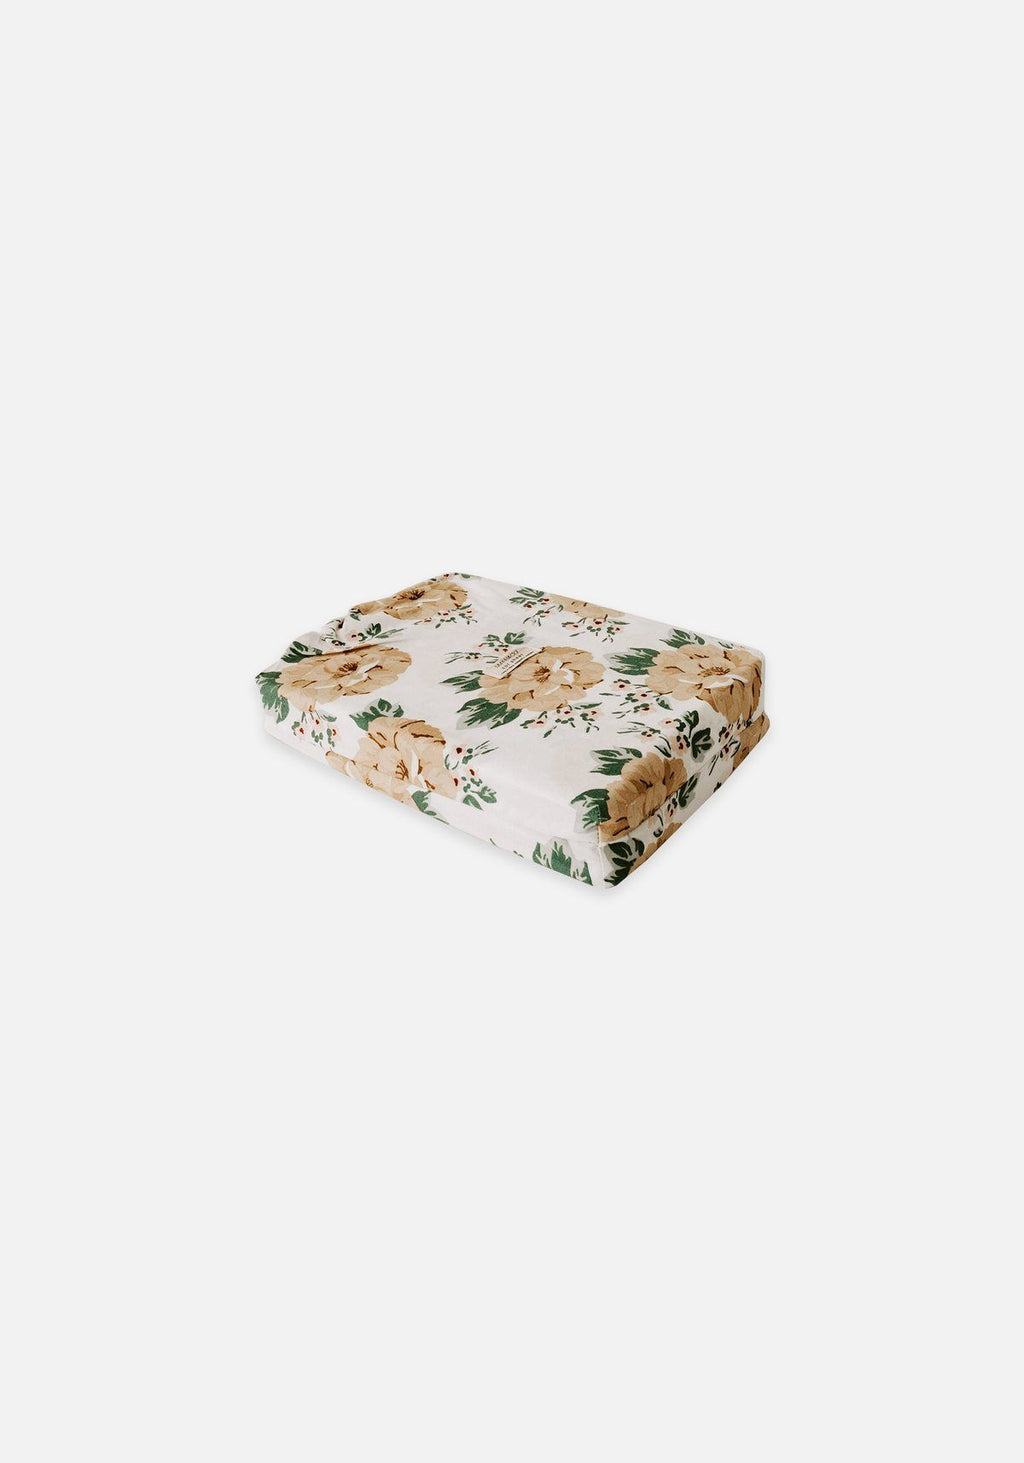 Mustard Floral fitted cot sheet - Miann & Co